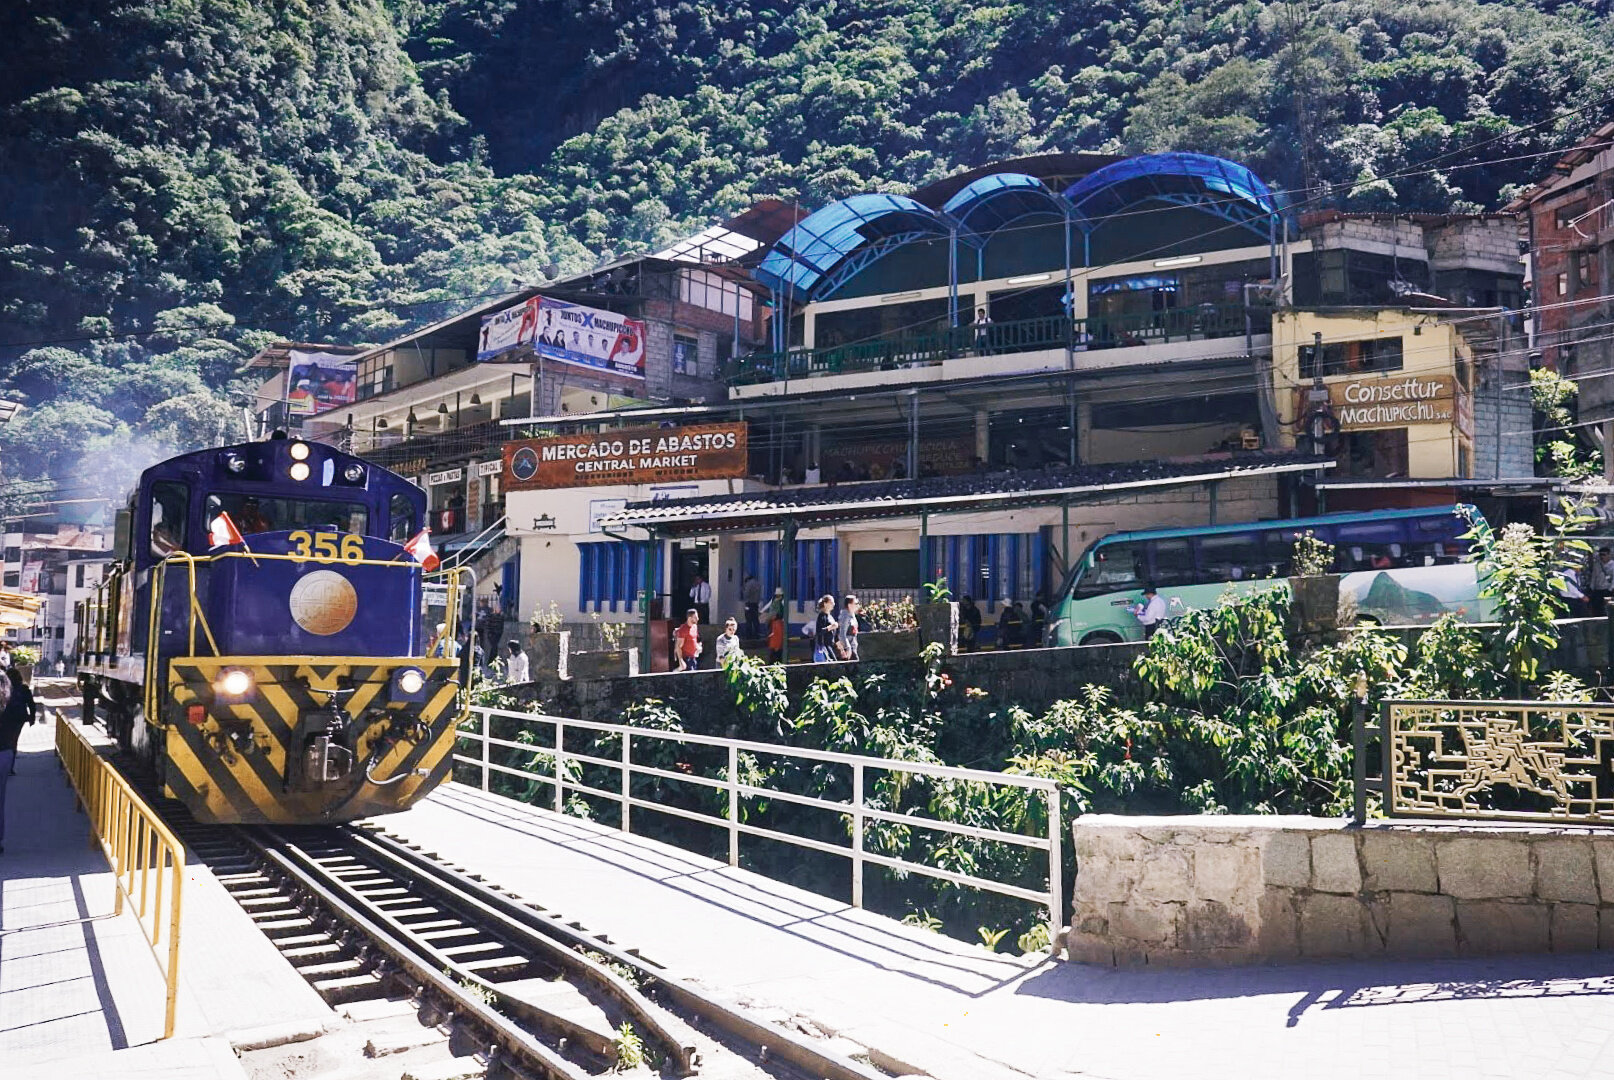 Since trains are the only transportation option in and out of Aguas Calientes, they're central to the town. Tracks run right through the middle of everything.